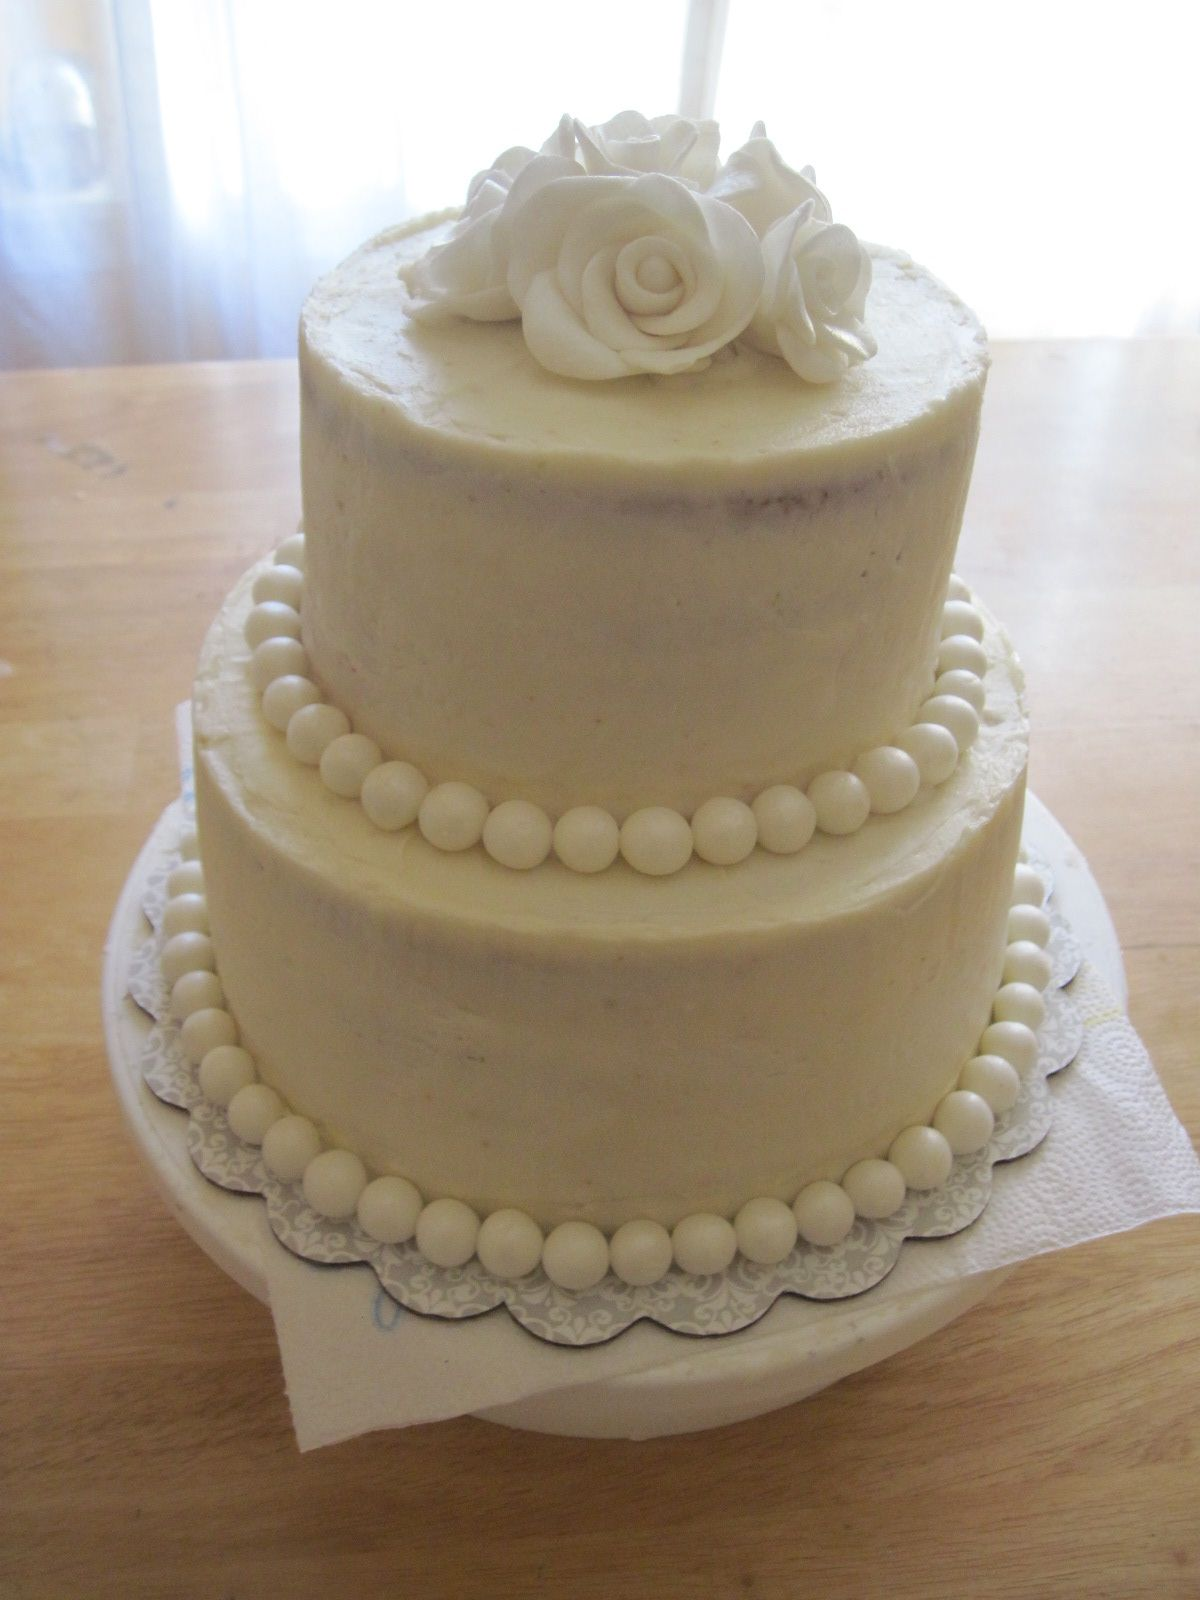 50th wedding decorations ideas  th Wedding Anniversary Cake for my friendus parents  Cakes